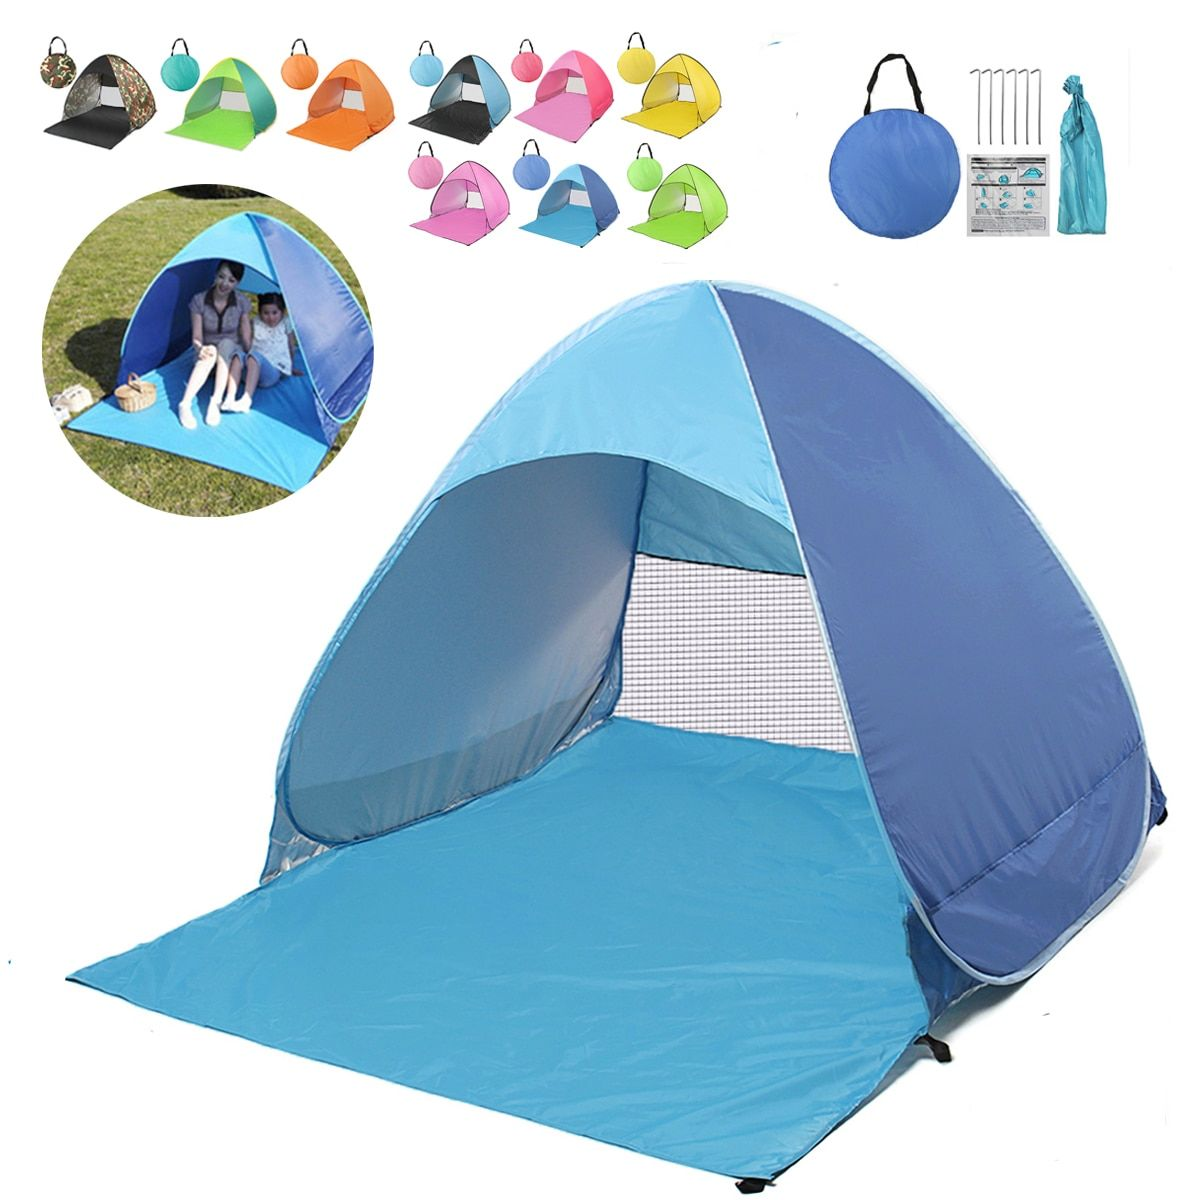 Portable PopUp Tents Outdoor Camping Folding Tent Beach Sun Shelter Tent Canopy Shelter Camping Fishing Picnic Anti-UV Sun Shade